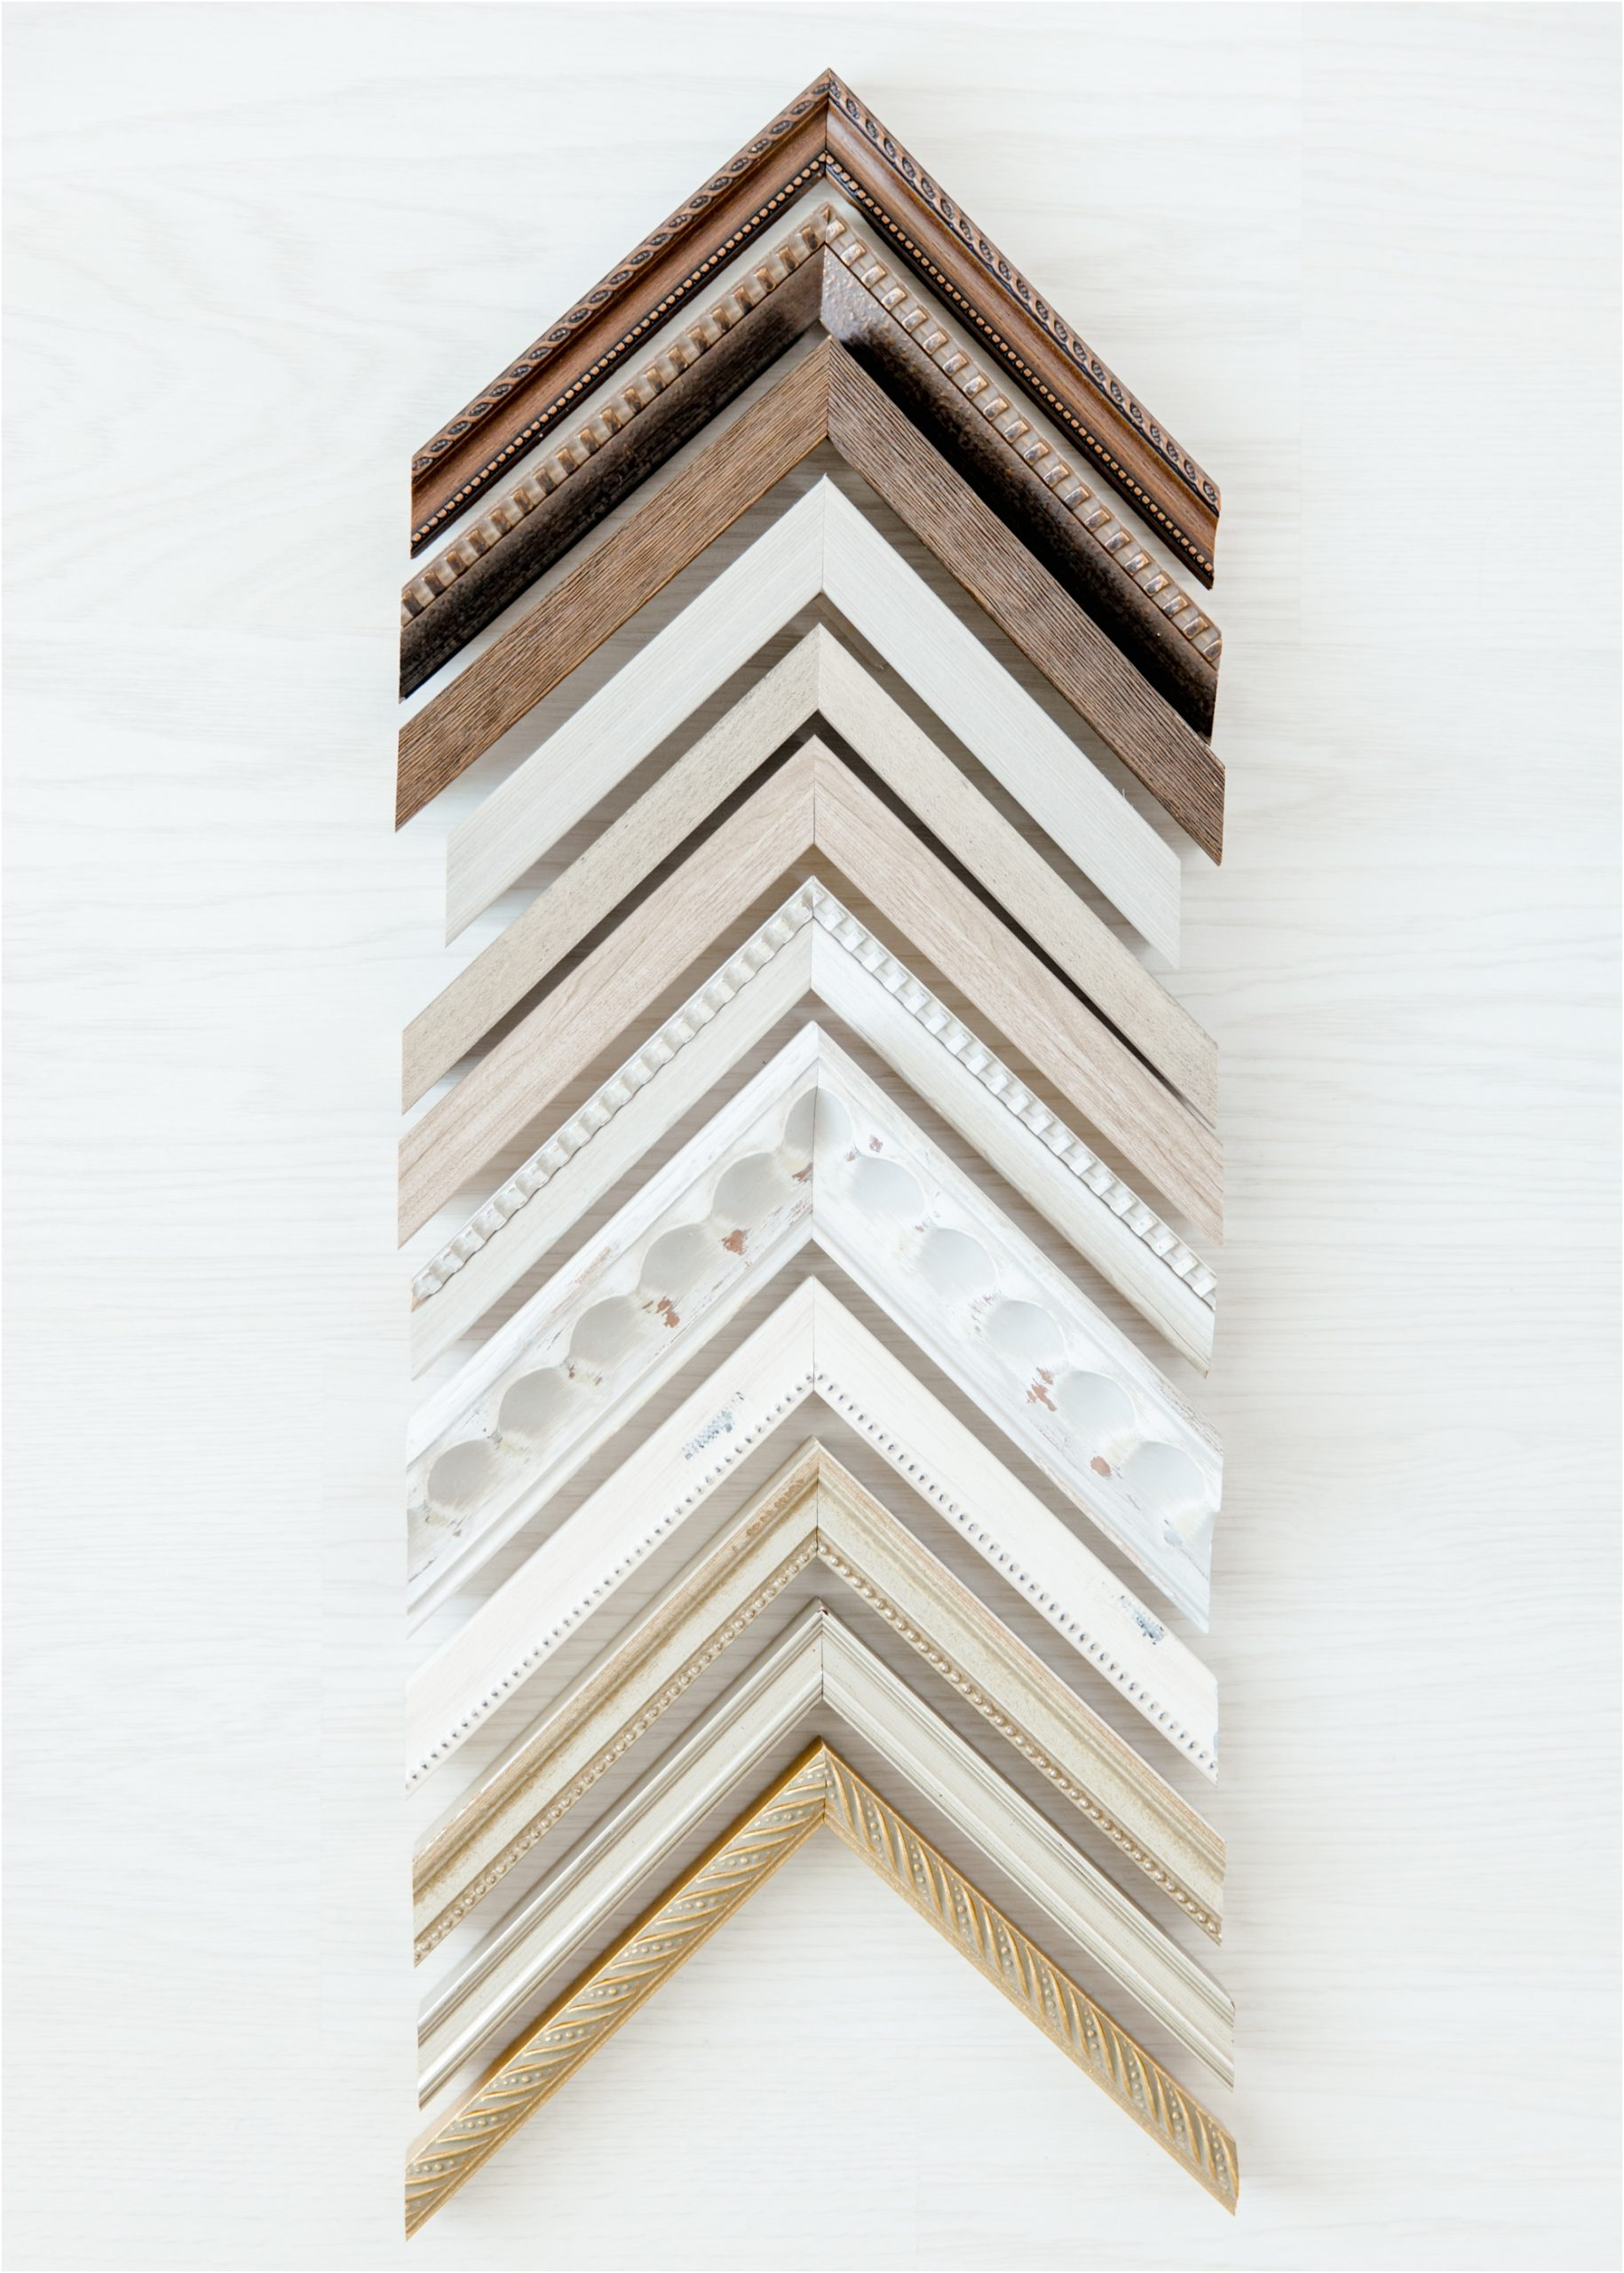 Frame corners from simple, modern designs to ornate silver tones and rustic wood options. Options provided by full service Katy TX photographer, Lifetime of Clicks Photography.